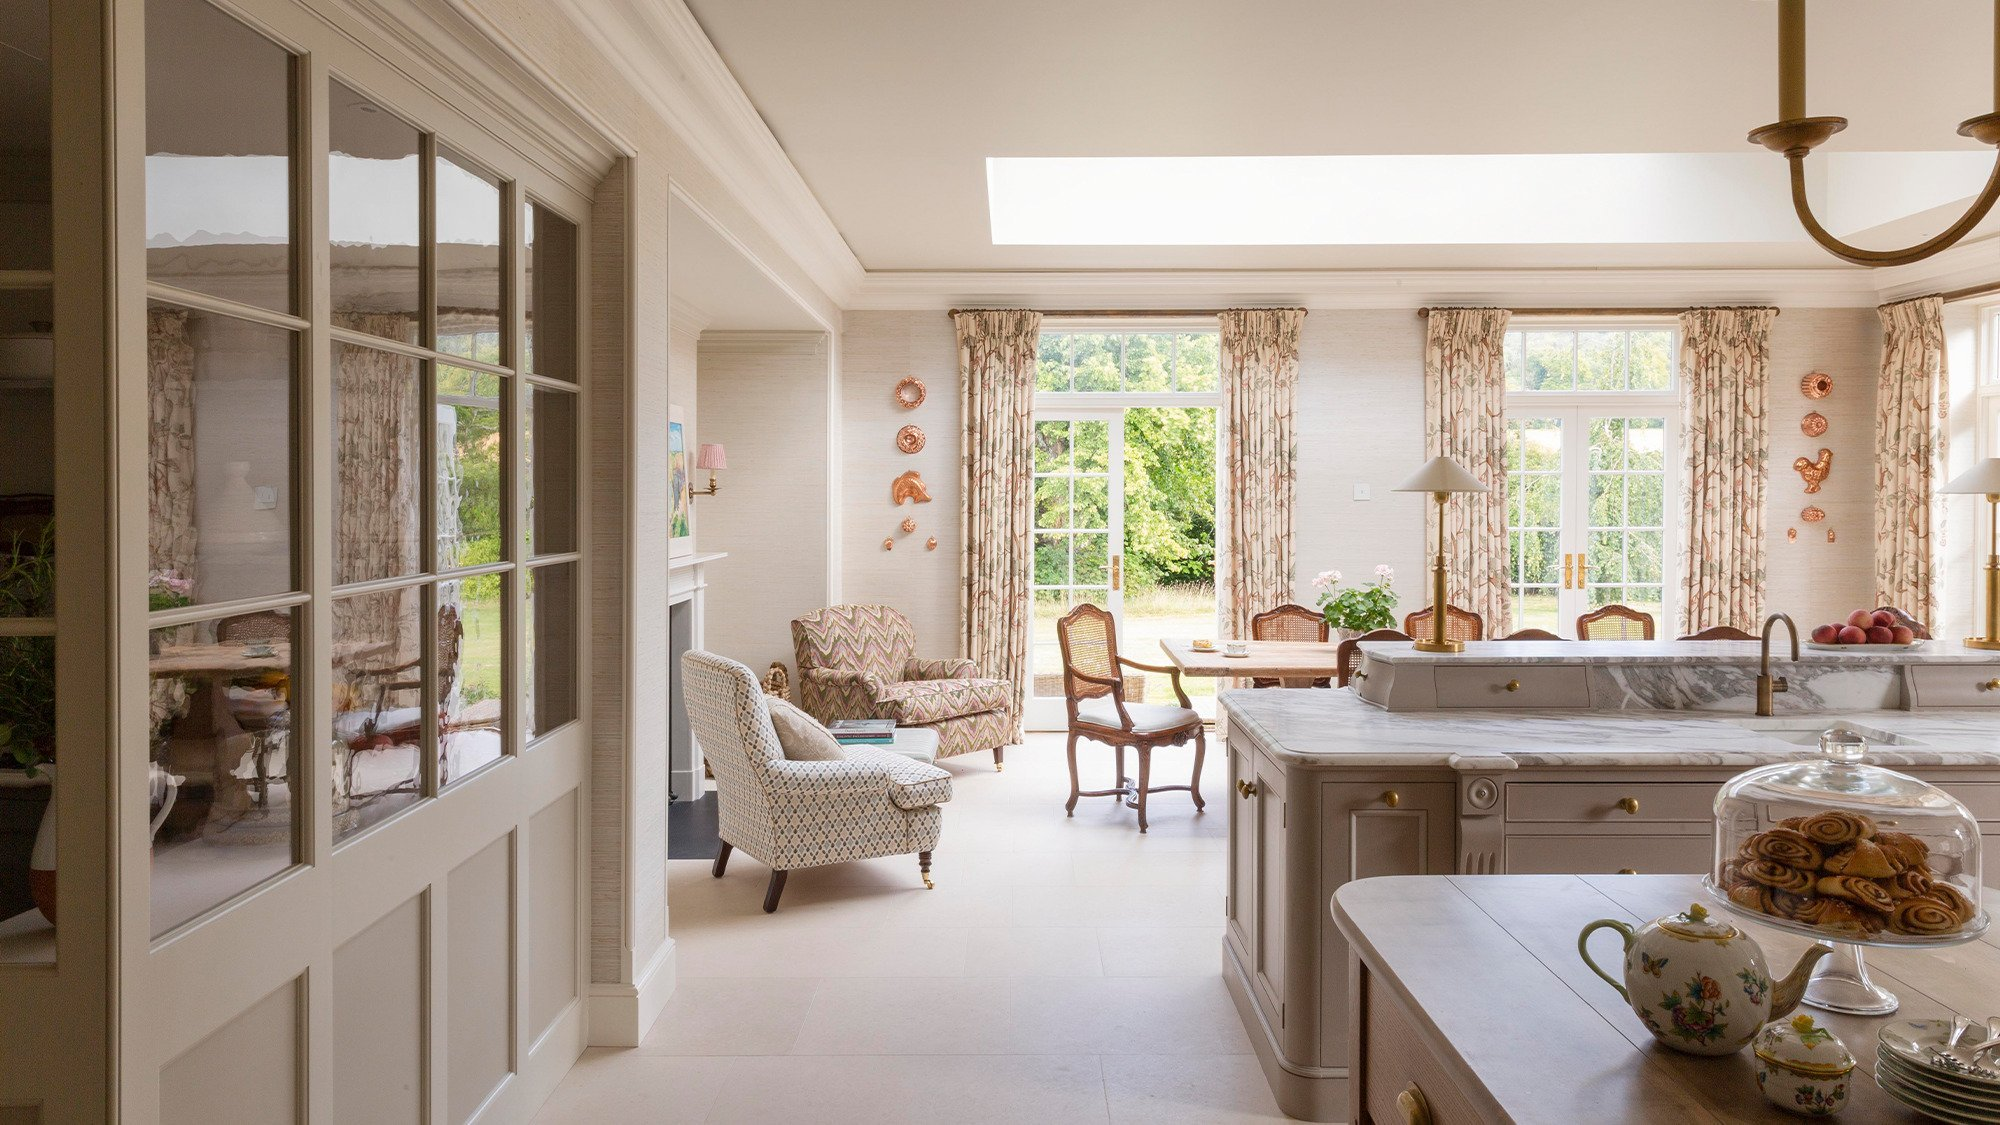 Classic English kitchen and breakfast area